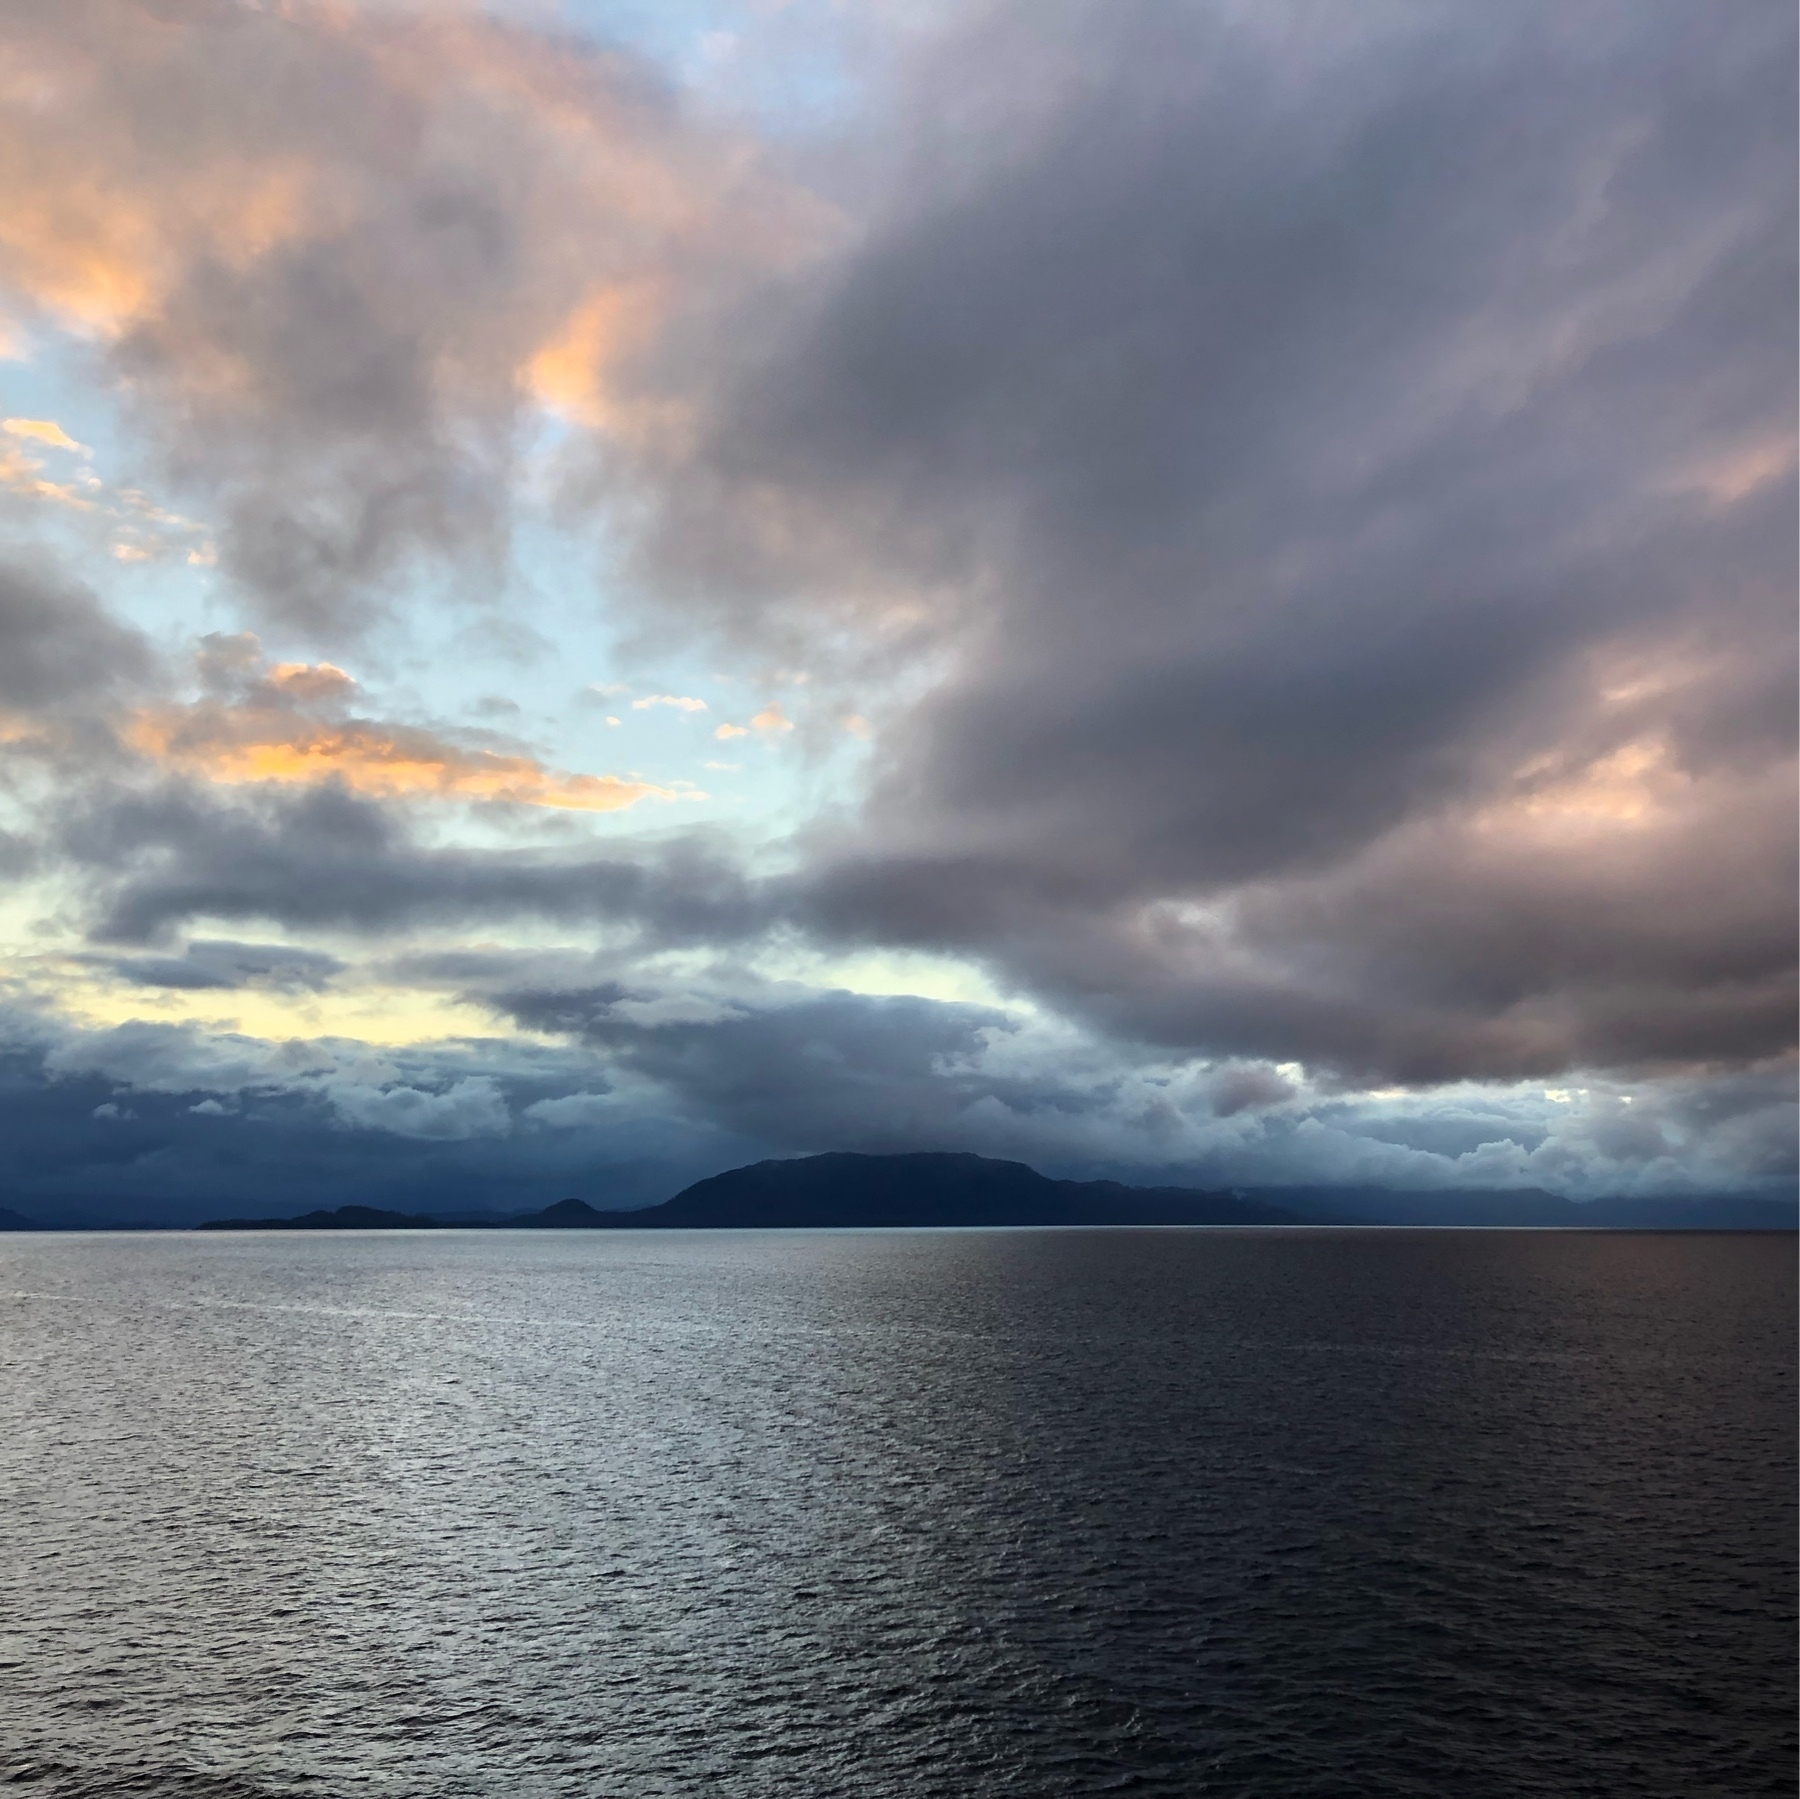 A photo of low hills in the Alaskan Fjords. Silvery blue water, black islands after sunset, and the sky is illumuniated in pale gray, dark gray, and a mere hint of orange. The colors are moody and dark, but the fading sunlight makes the image possible.